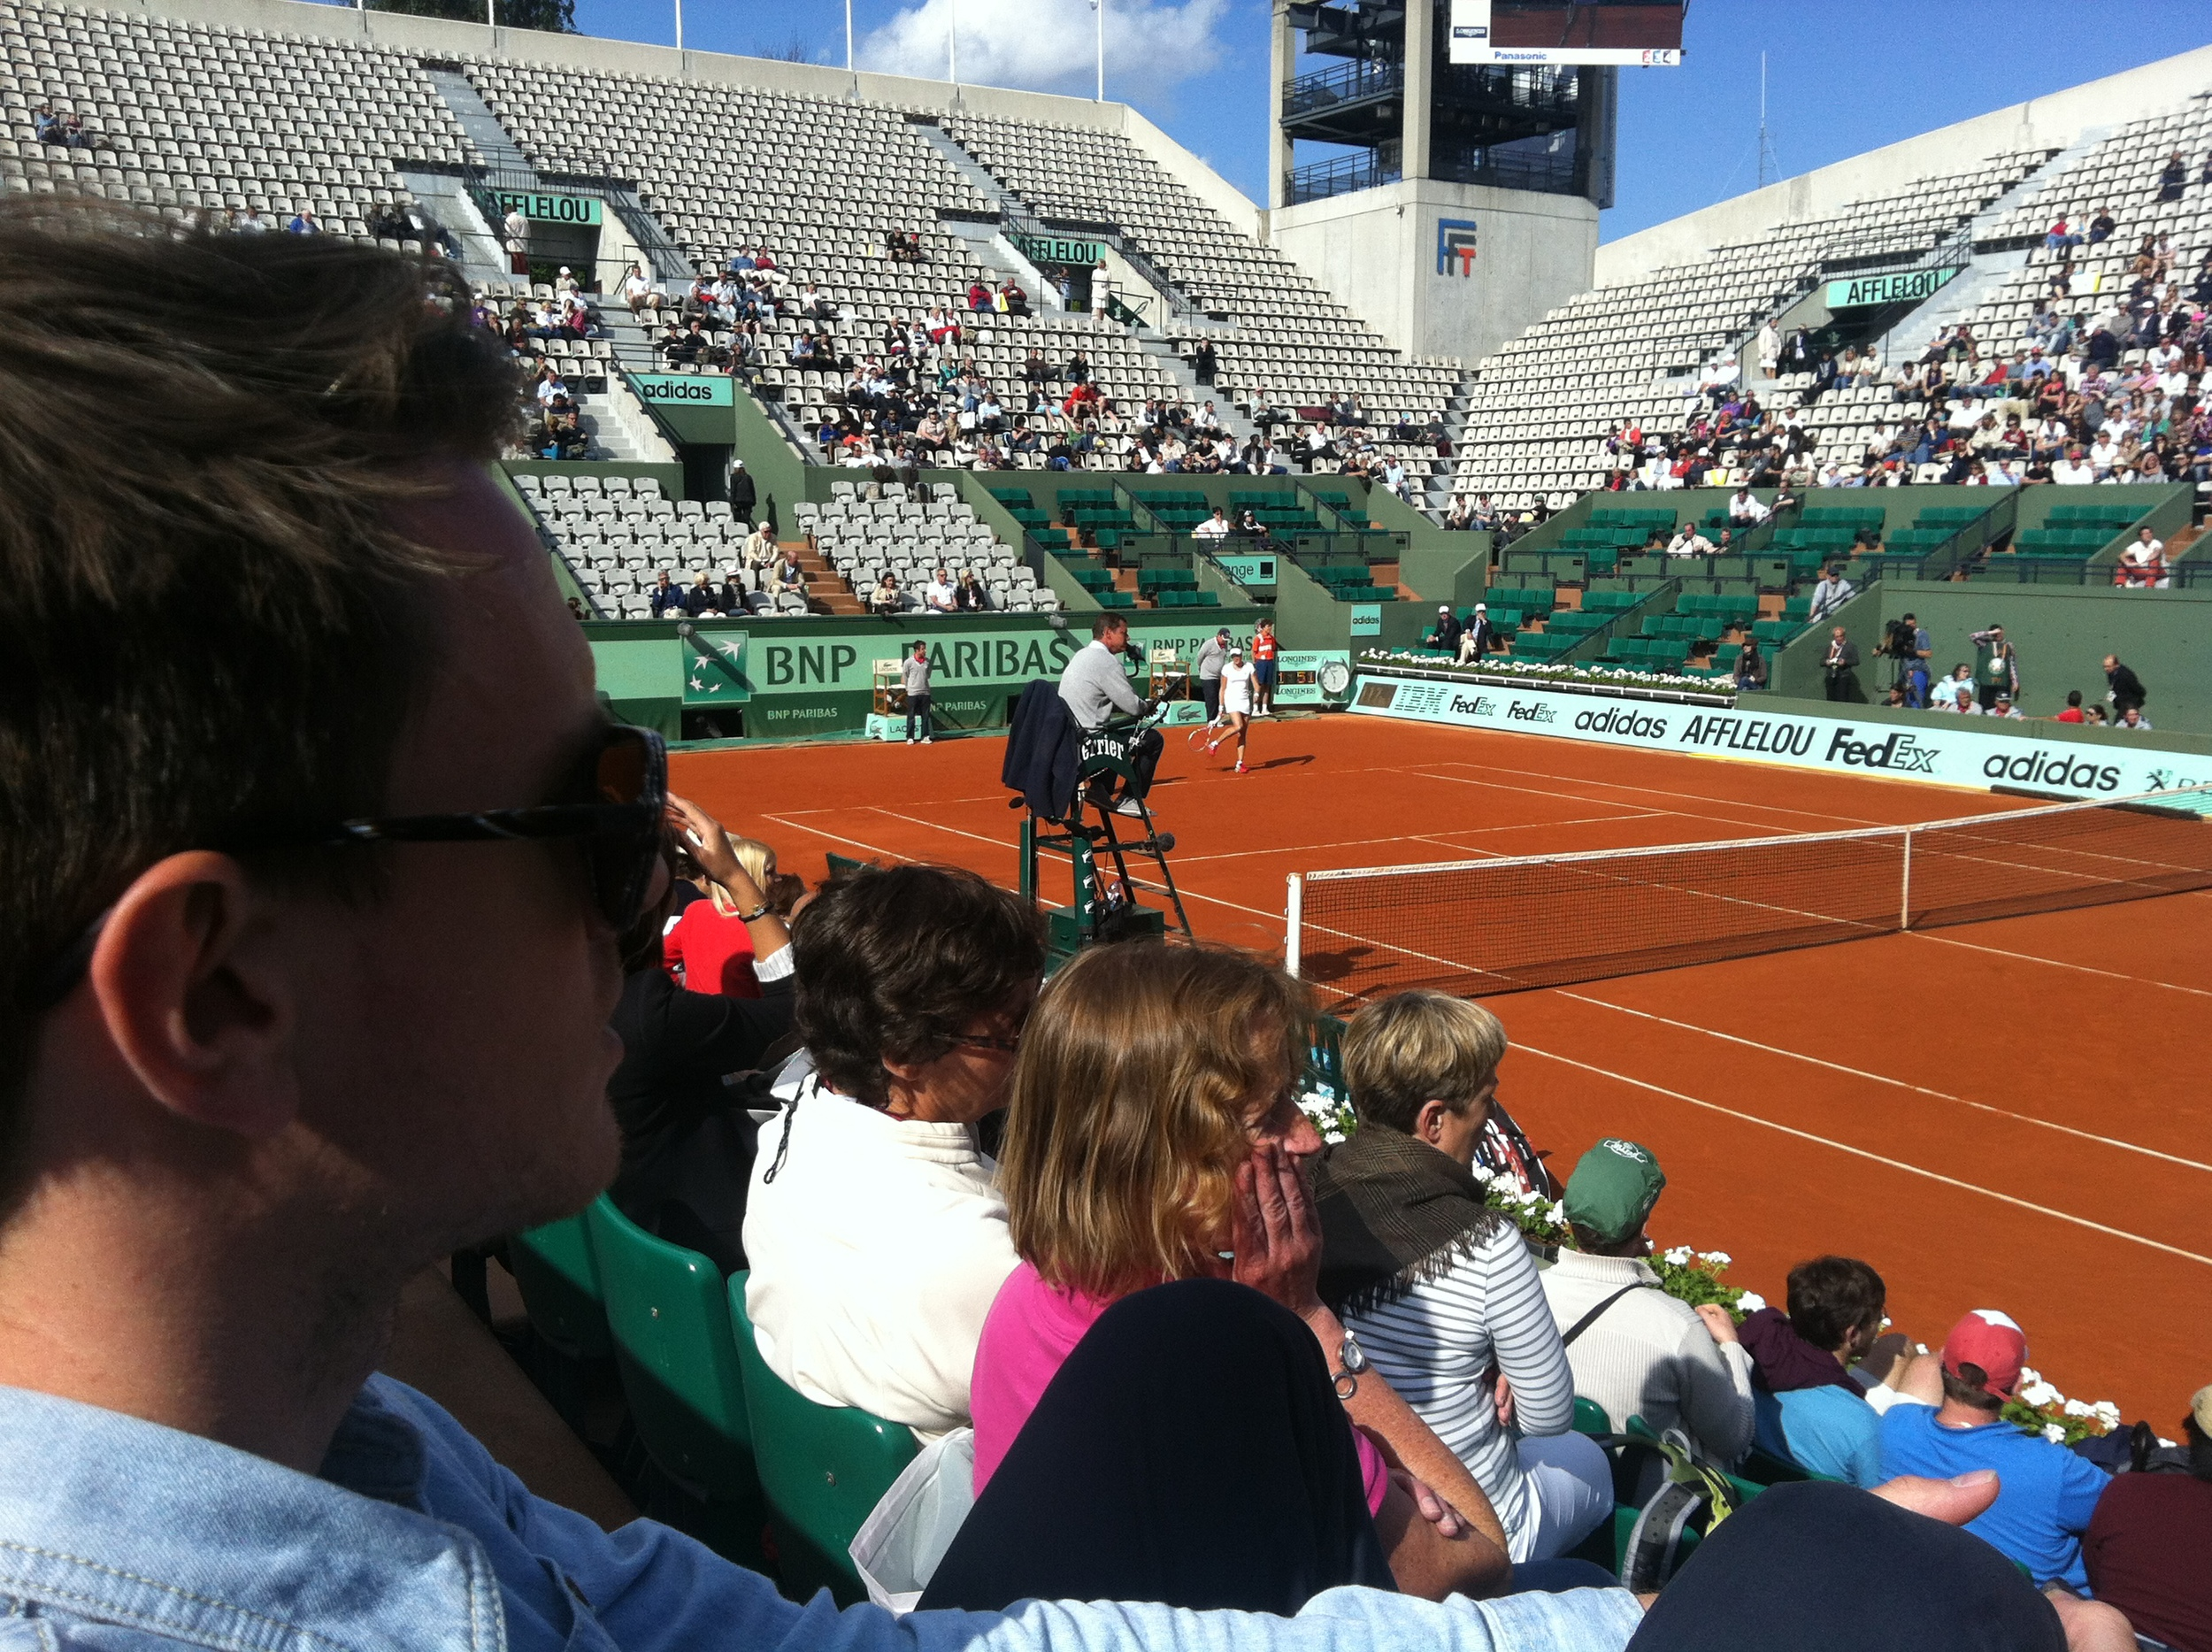 andy barr alue optics roland garros french open